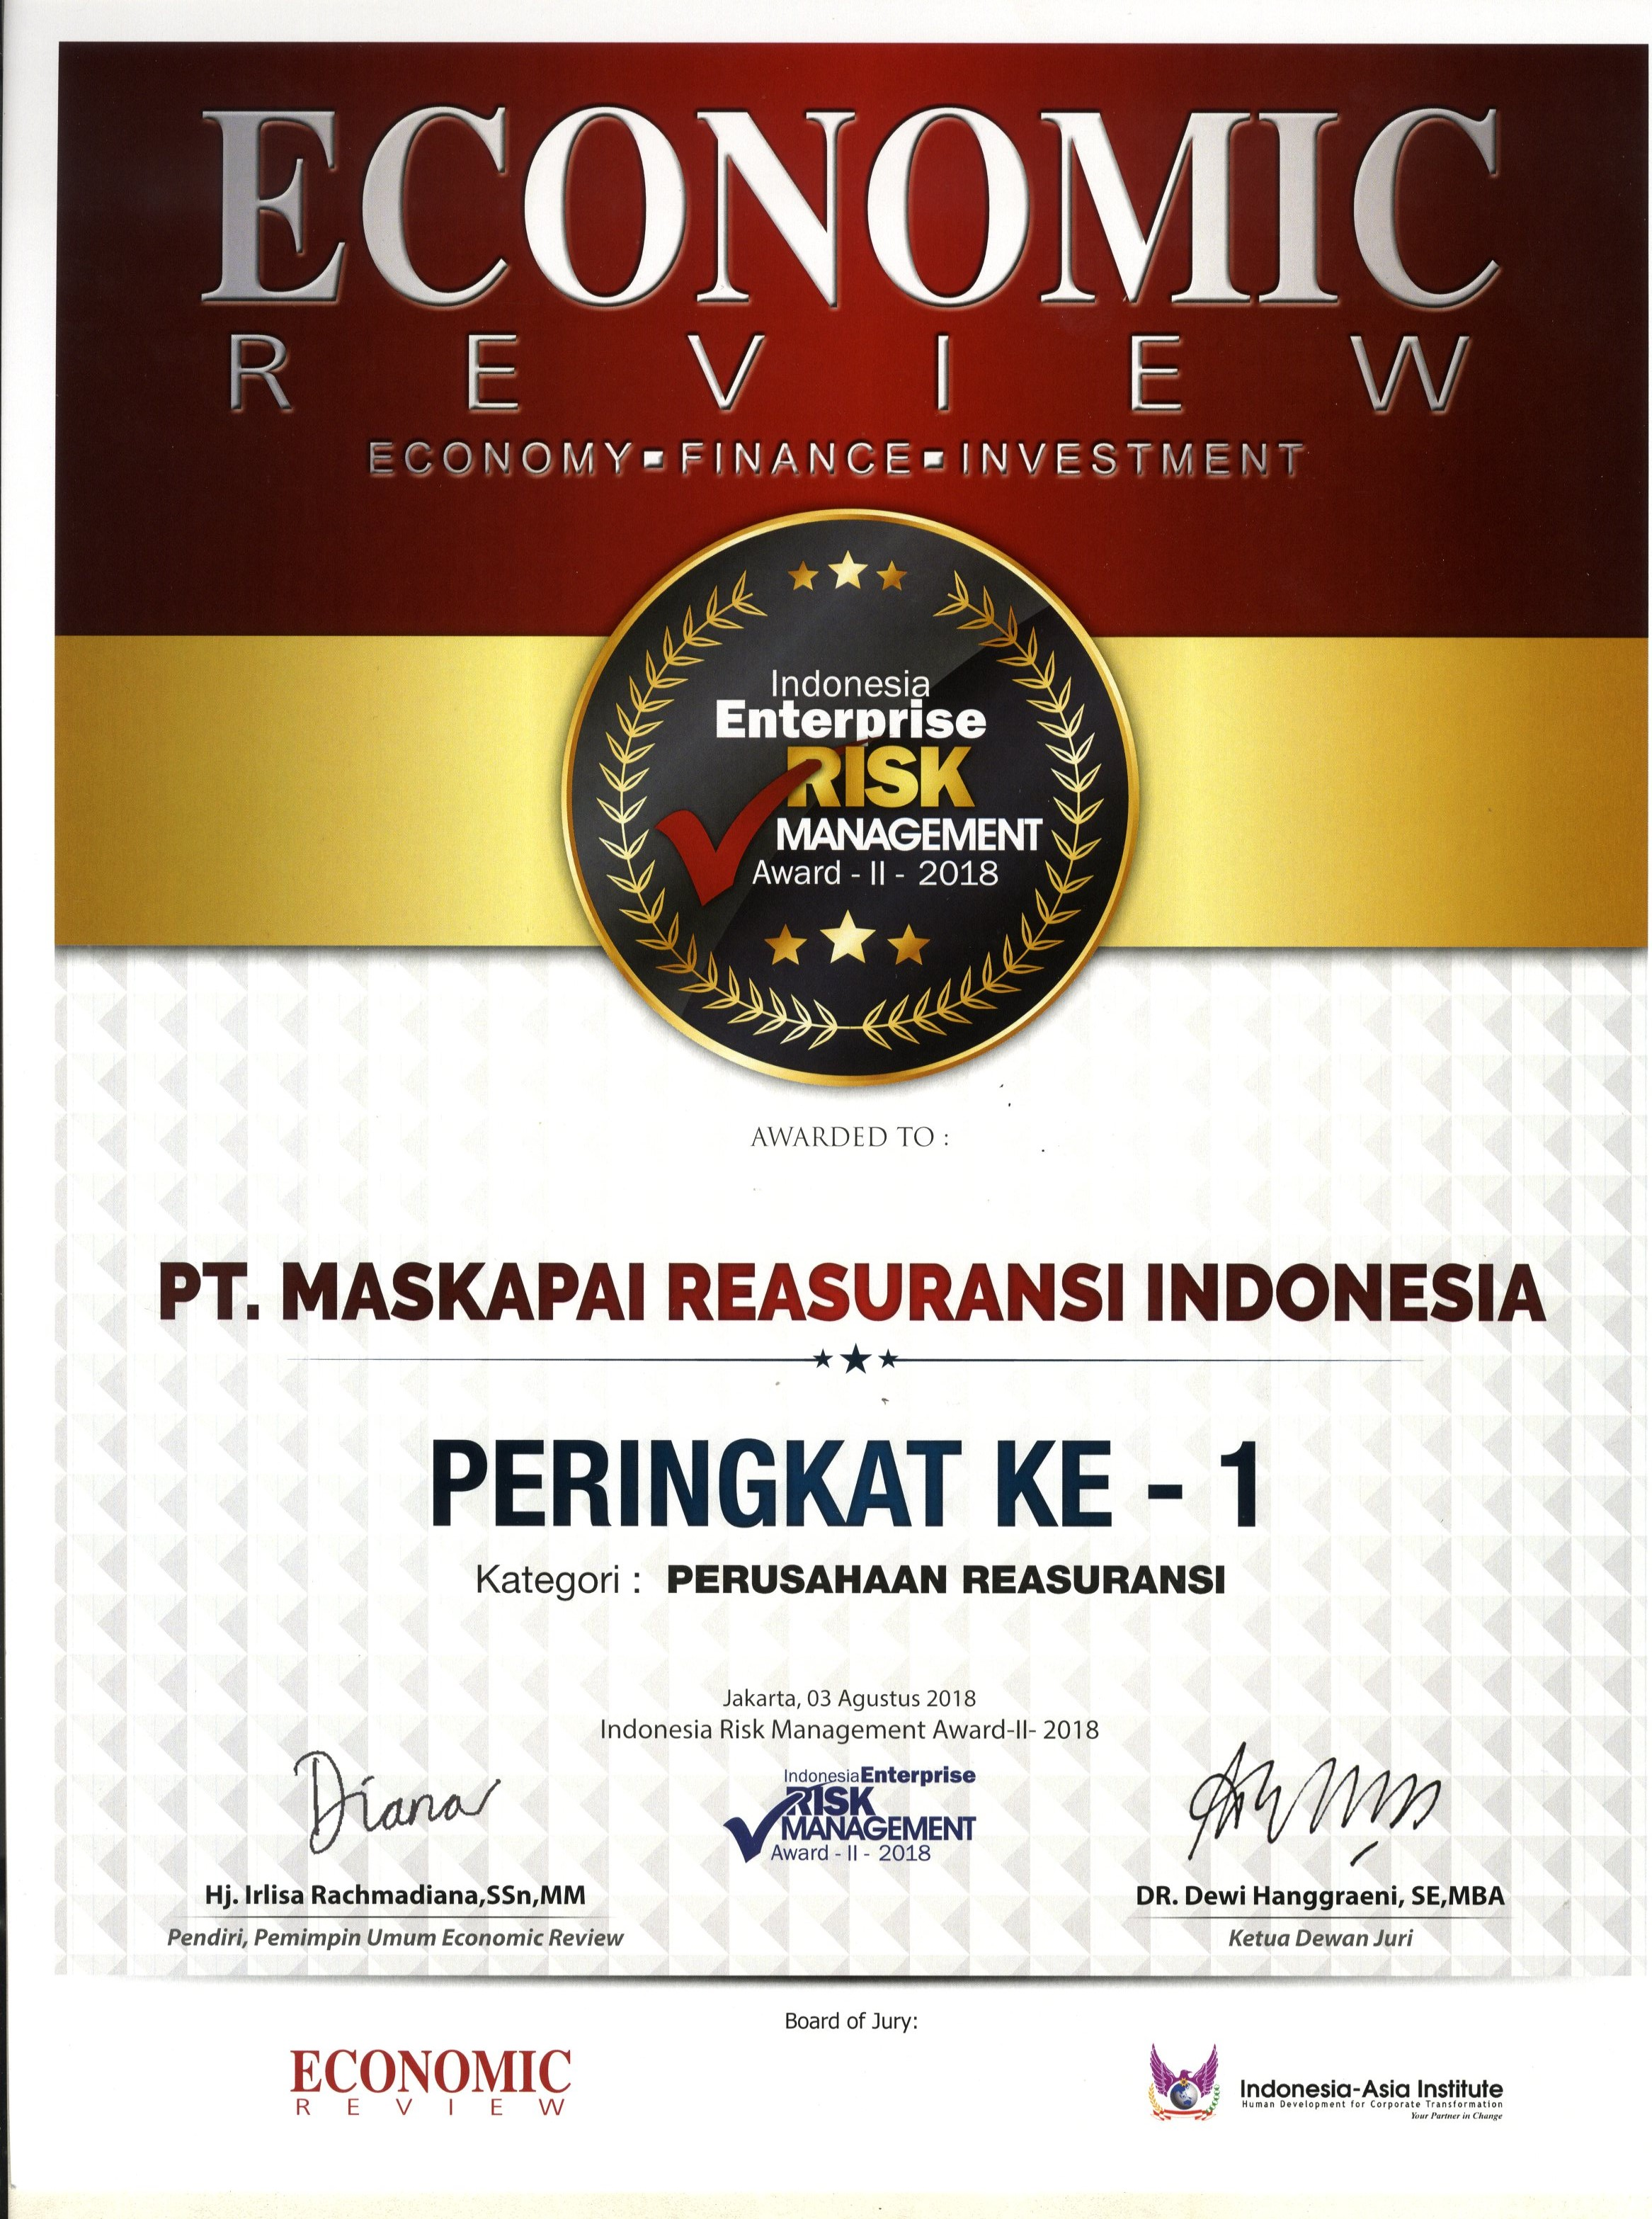 Majalah Economic Review : Peringkat I Kategori Reasuransi Enterprise Risk Management Award II 2018